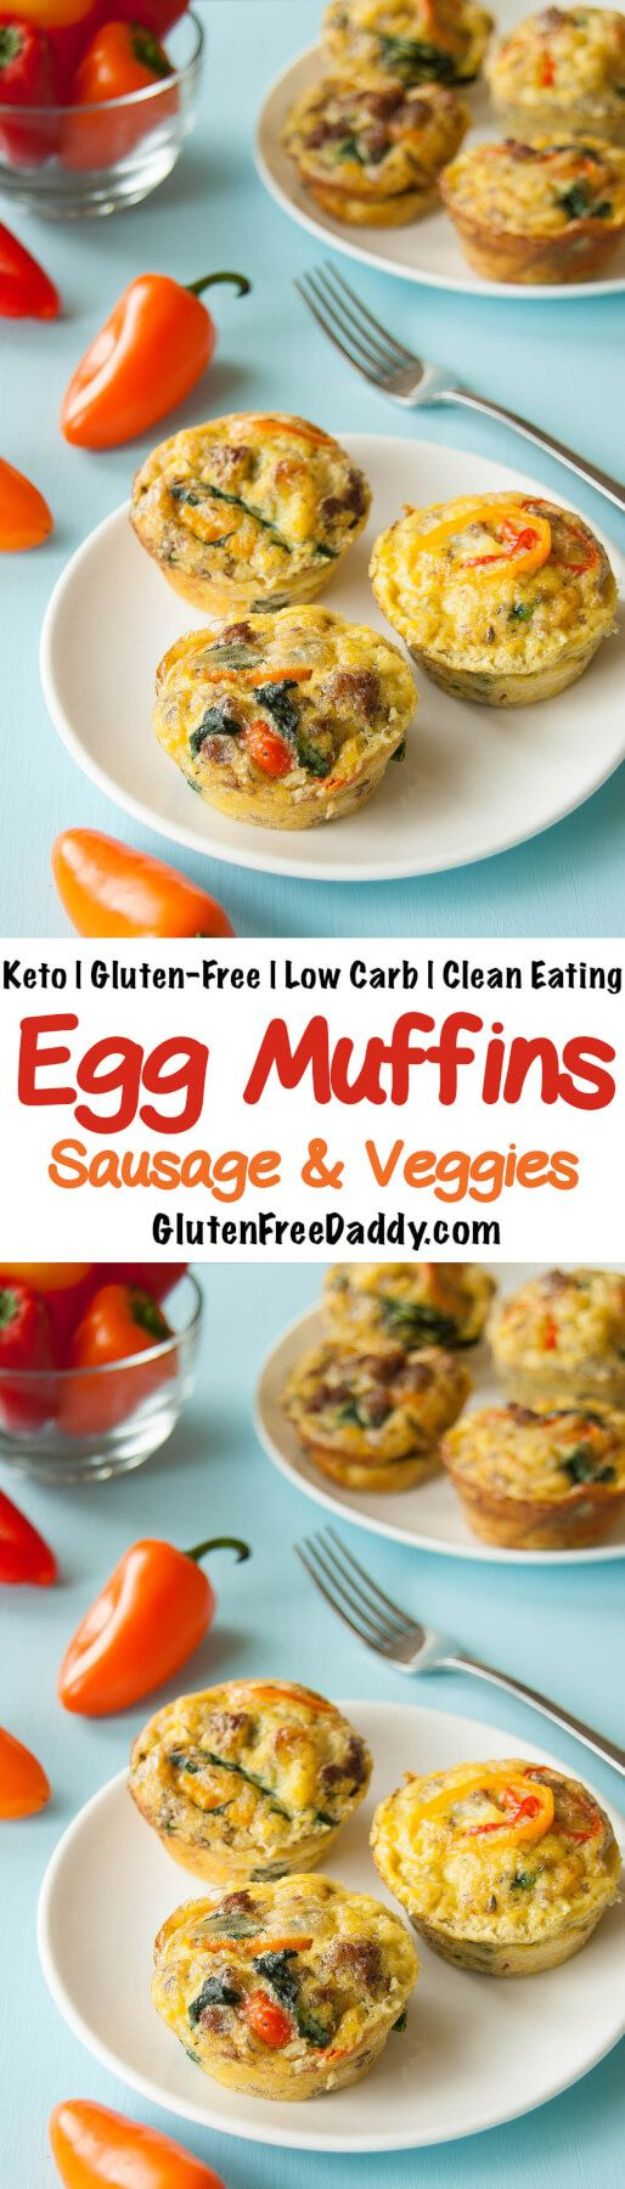 Keto Breakfast Recipes - Keto Egg Muffins with Sausage and Veggies - Low Carb Breakfasts and Morning Meals for the Ketogenic Diet - Low Carbohydrate Foods on the Go - Easy Crockpot Recipes and Casserole - Muffins and Pancakes, Shake and Smoothie, Ideas With No Eggs http://diyjoy.com/keto-breakfast-recipes